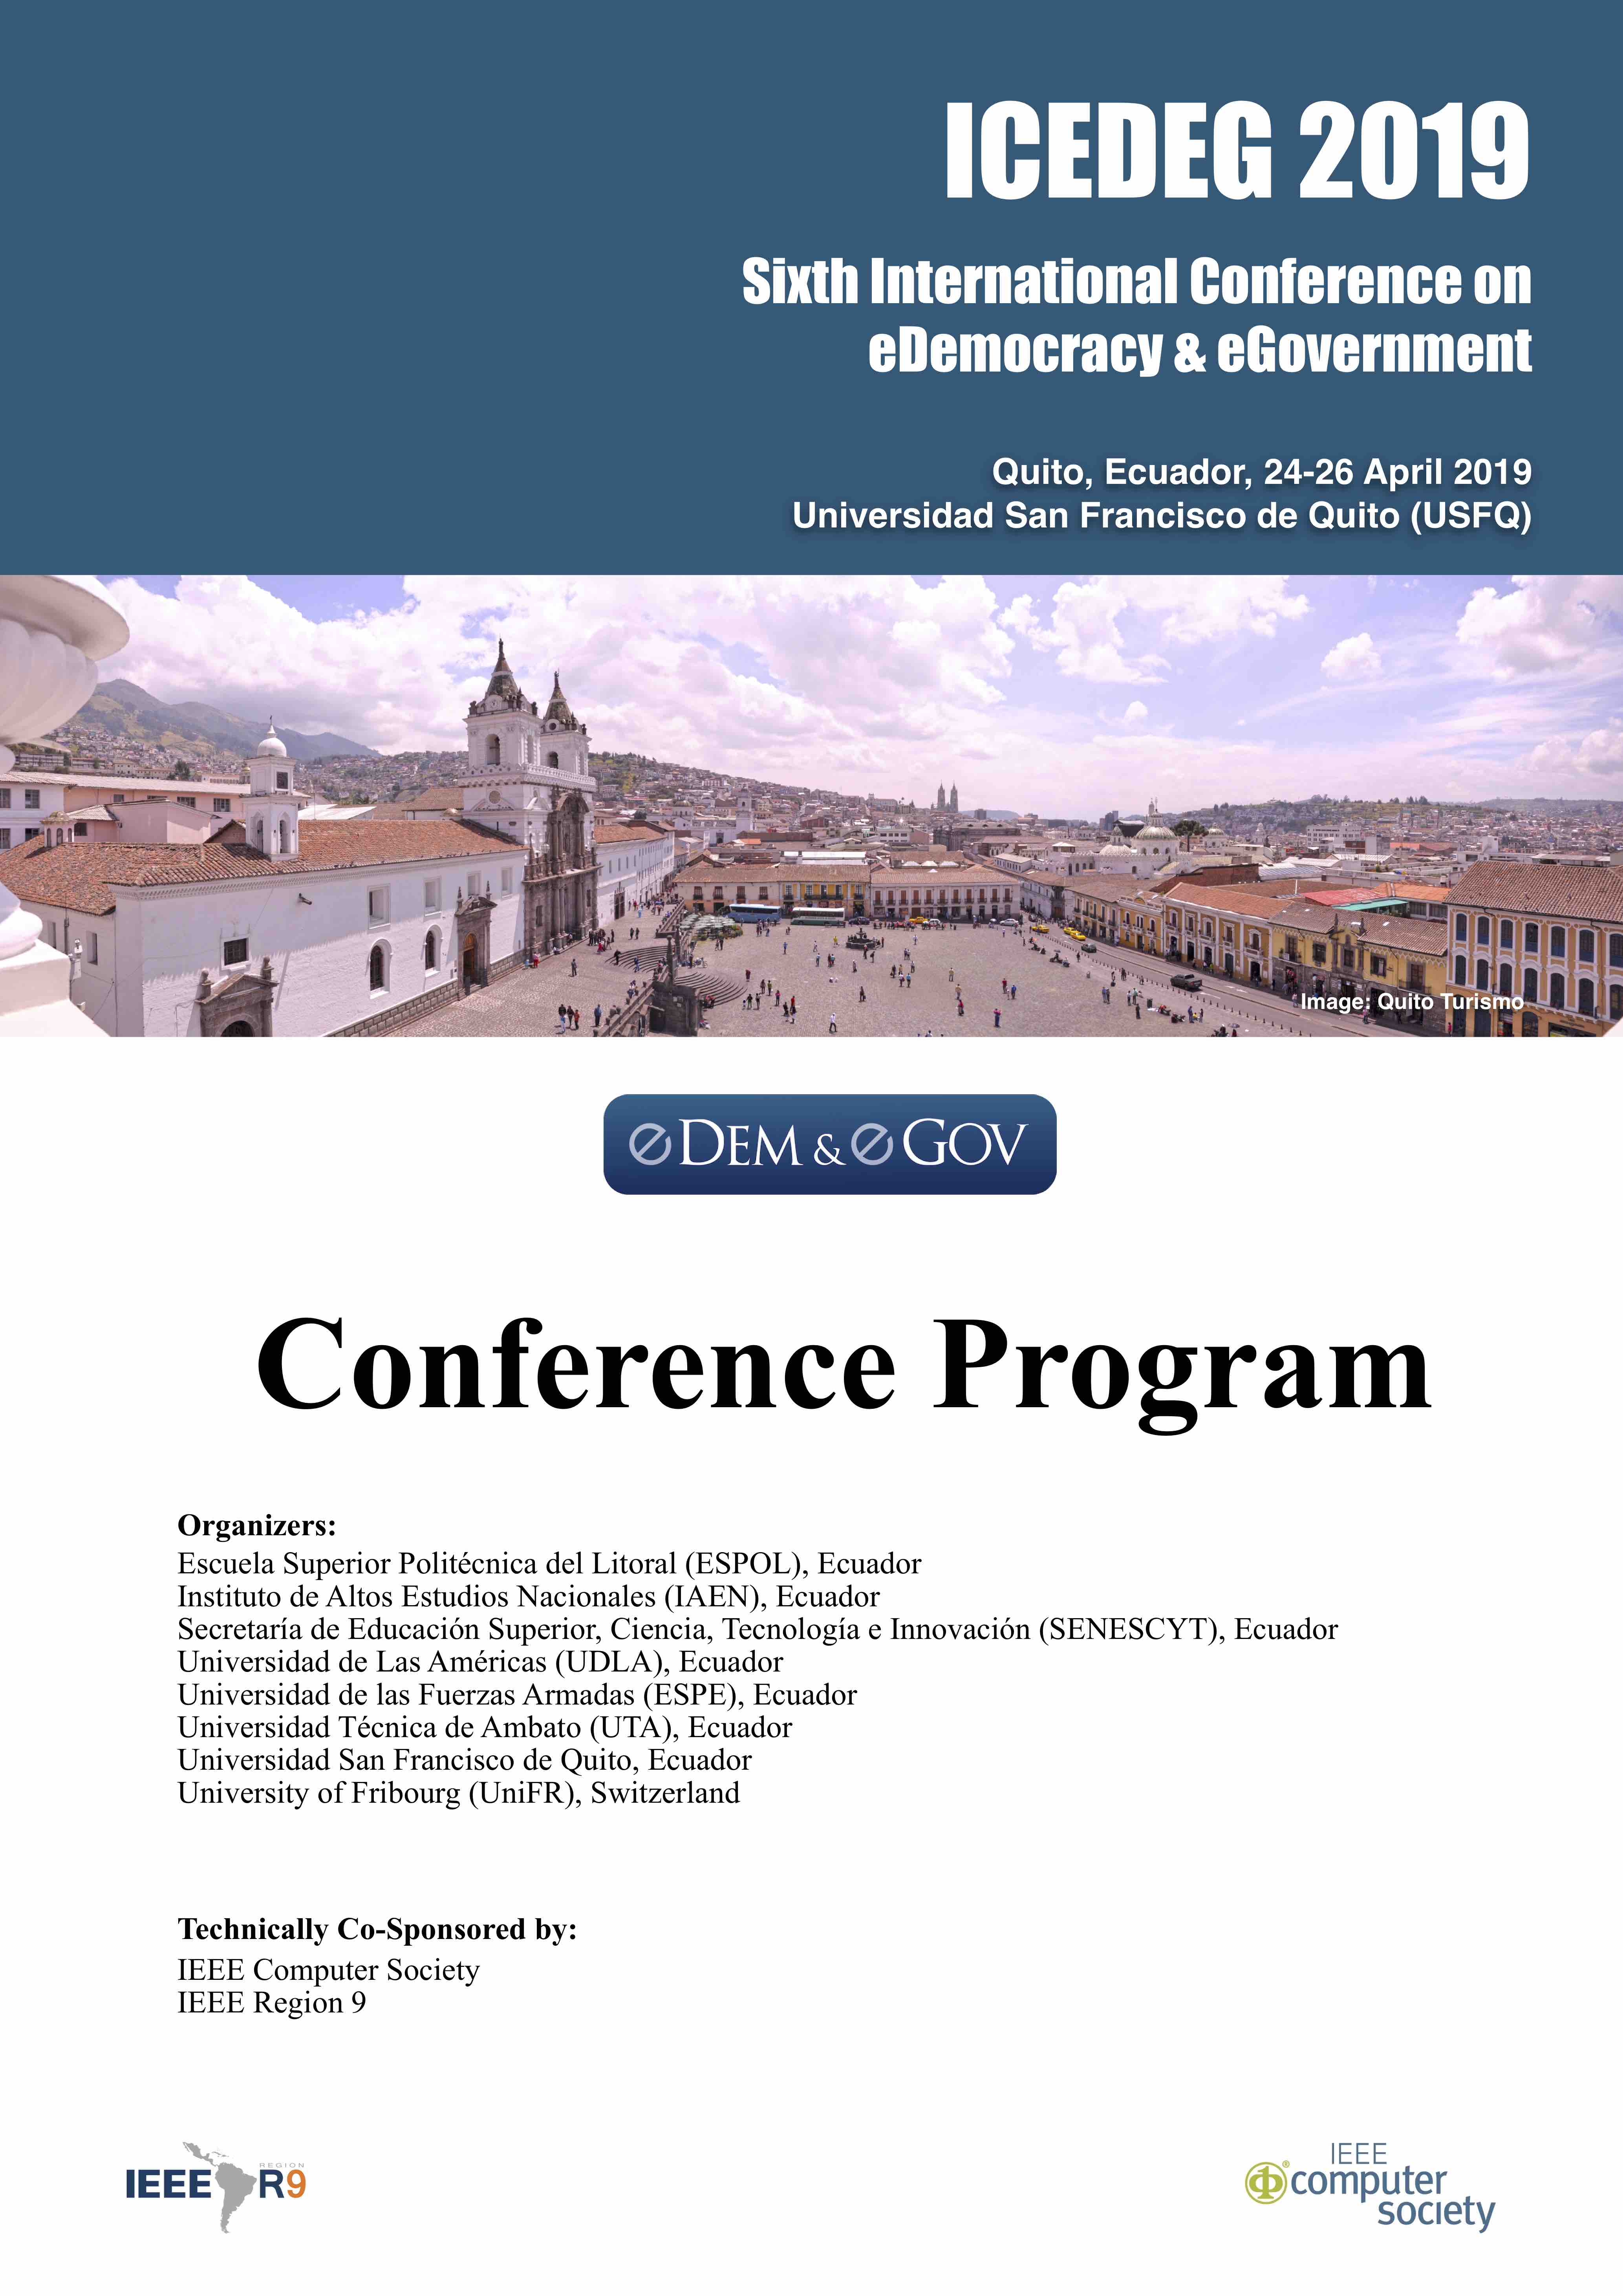 Conference Program | International Conference on eDemocracy